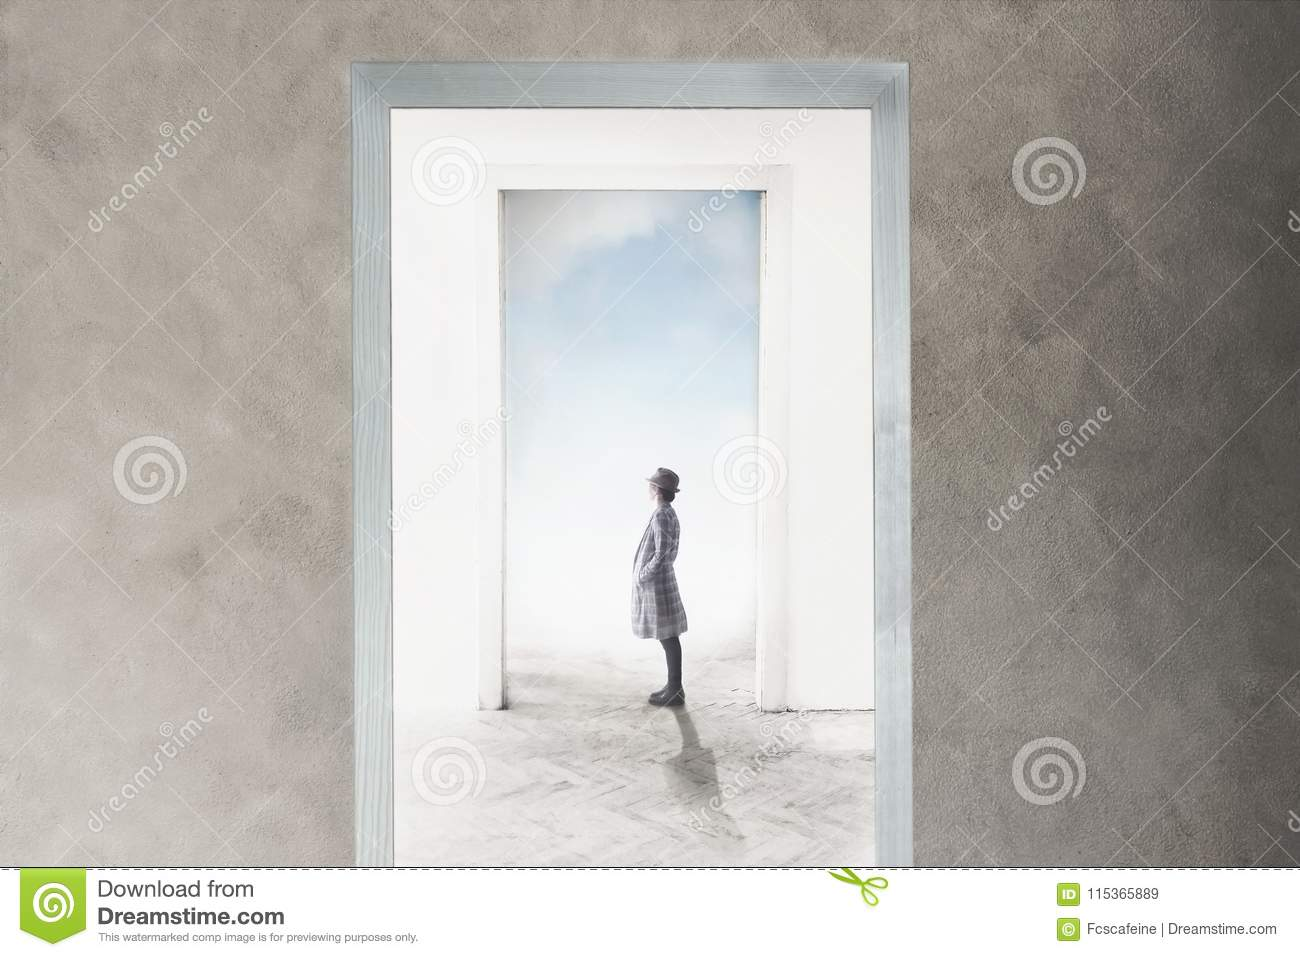 Woman observe curious the door that opens towards freedom and dreams